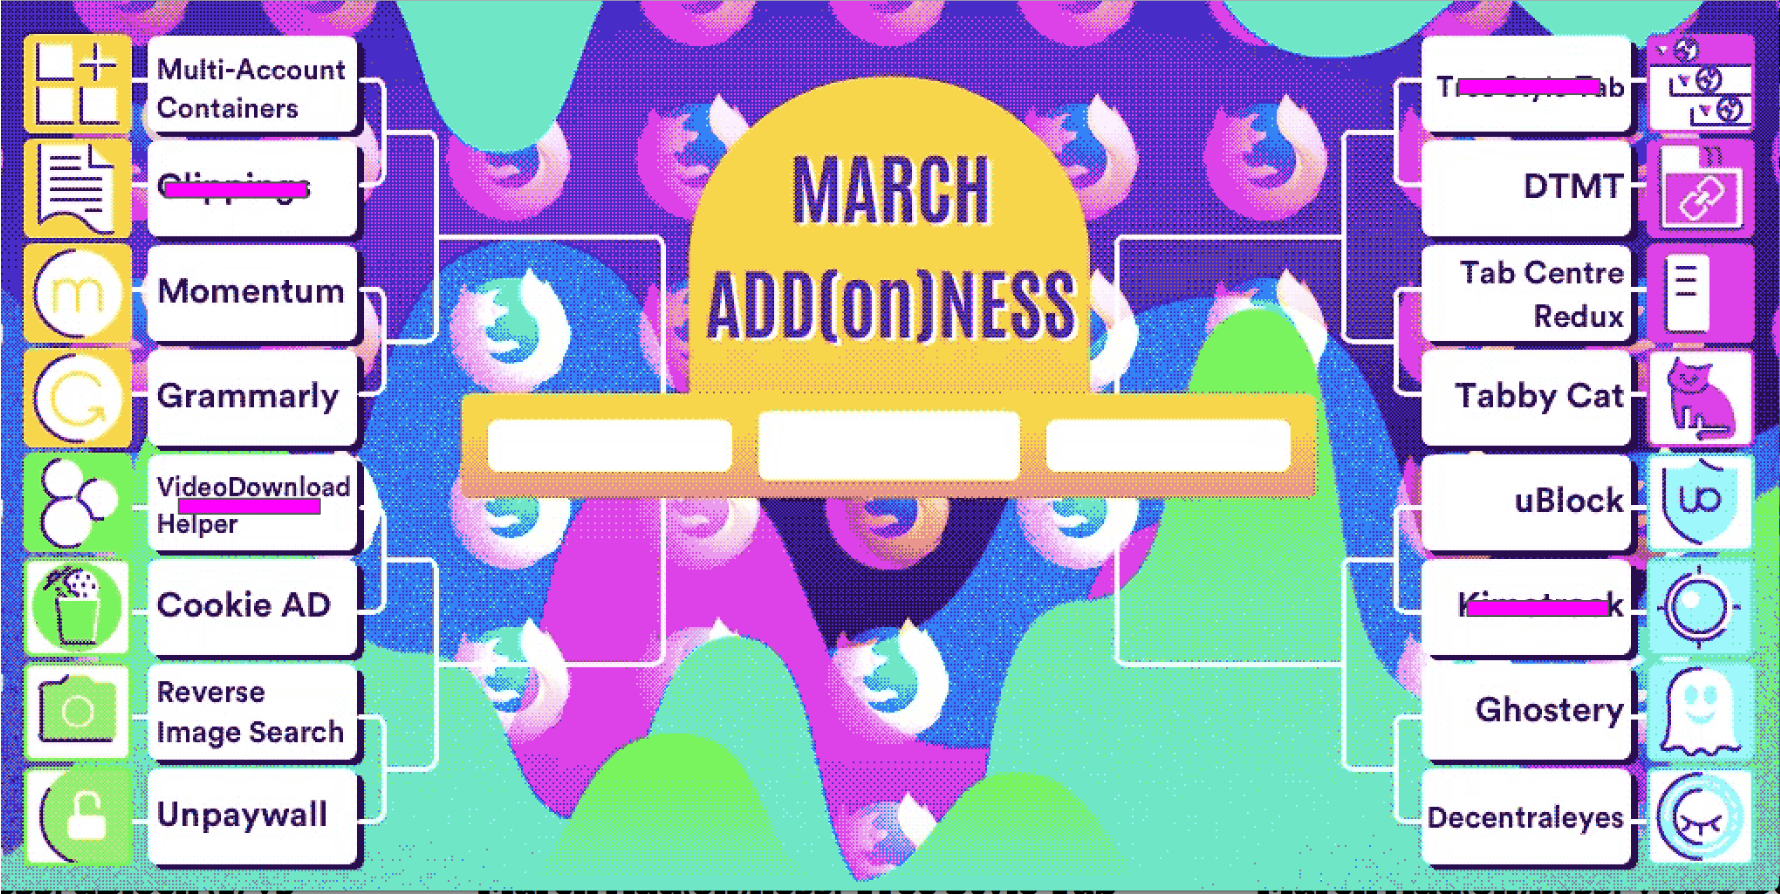 Firefox March Addonness: Momentum (2) vs Grammarly (3) | The Firefox